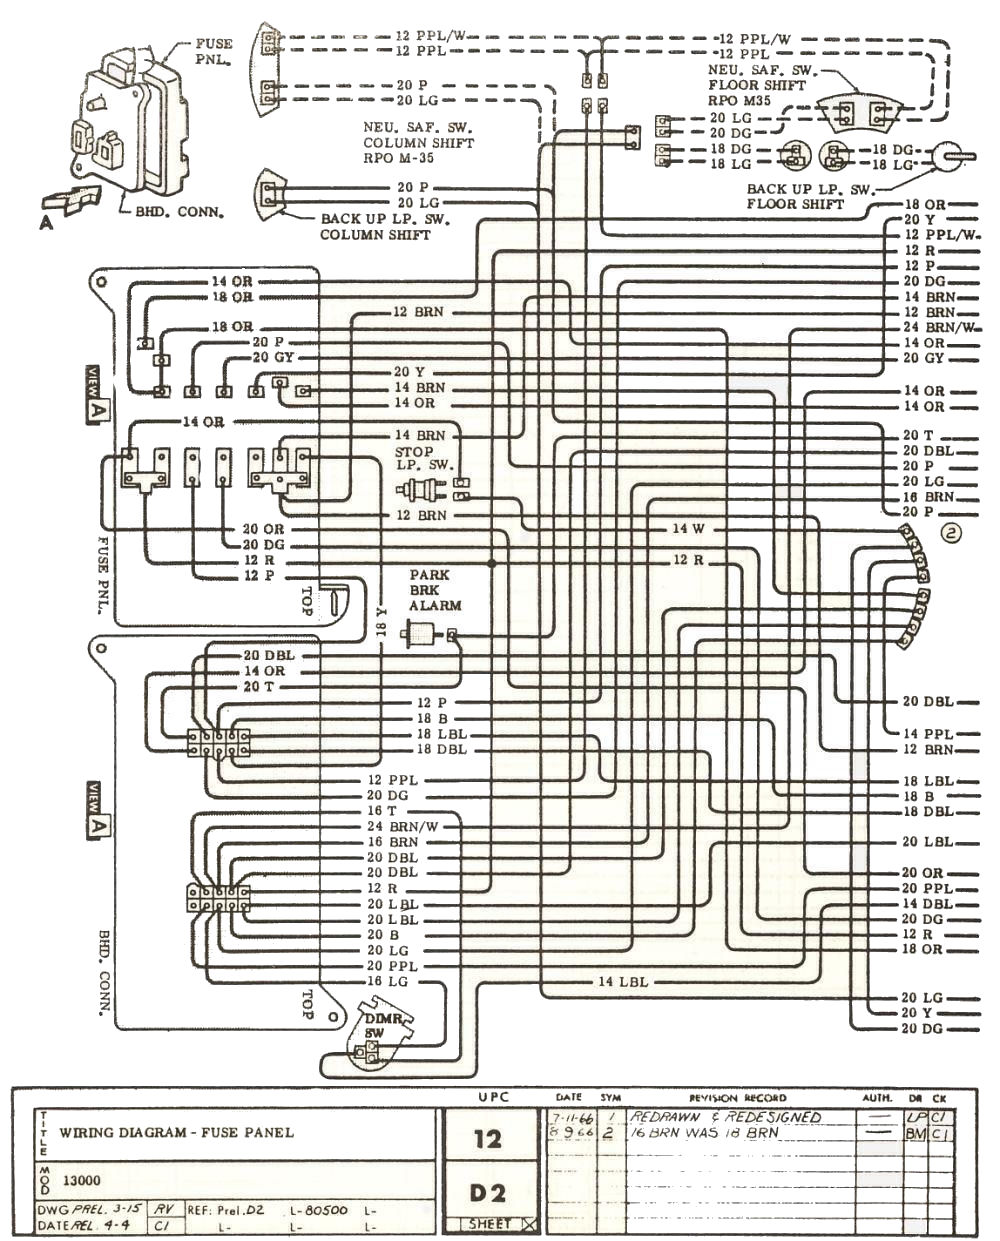 Fine 1968 Impala Wiring Diagram Photos - Electrical System Block ...